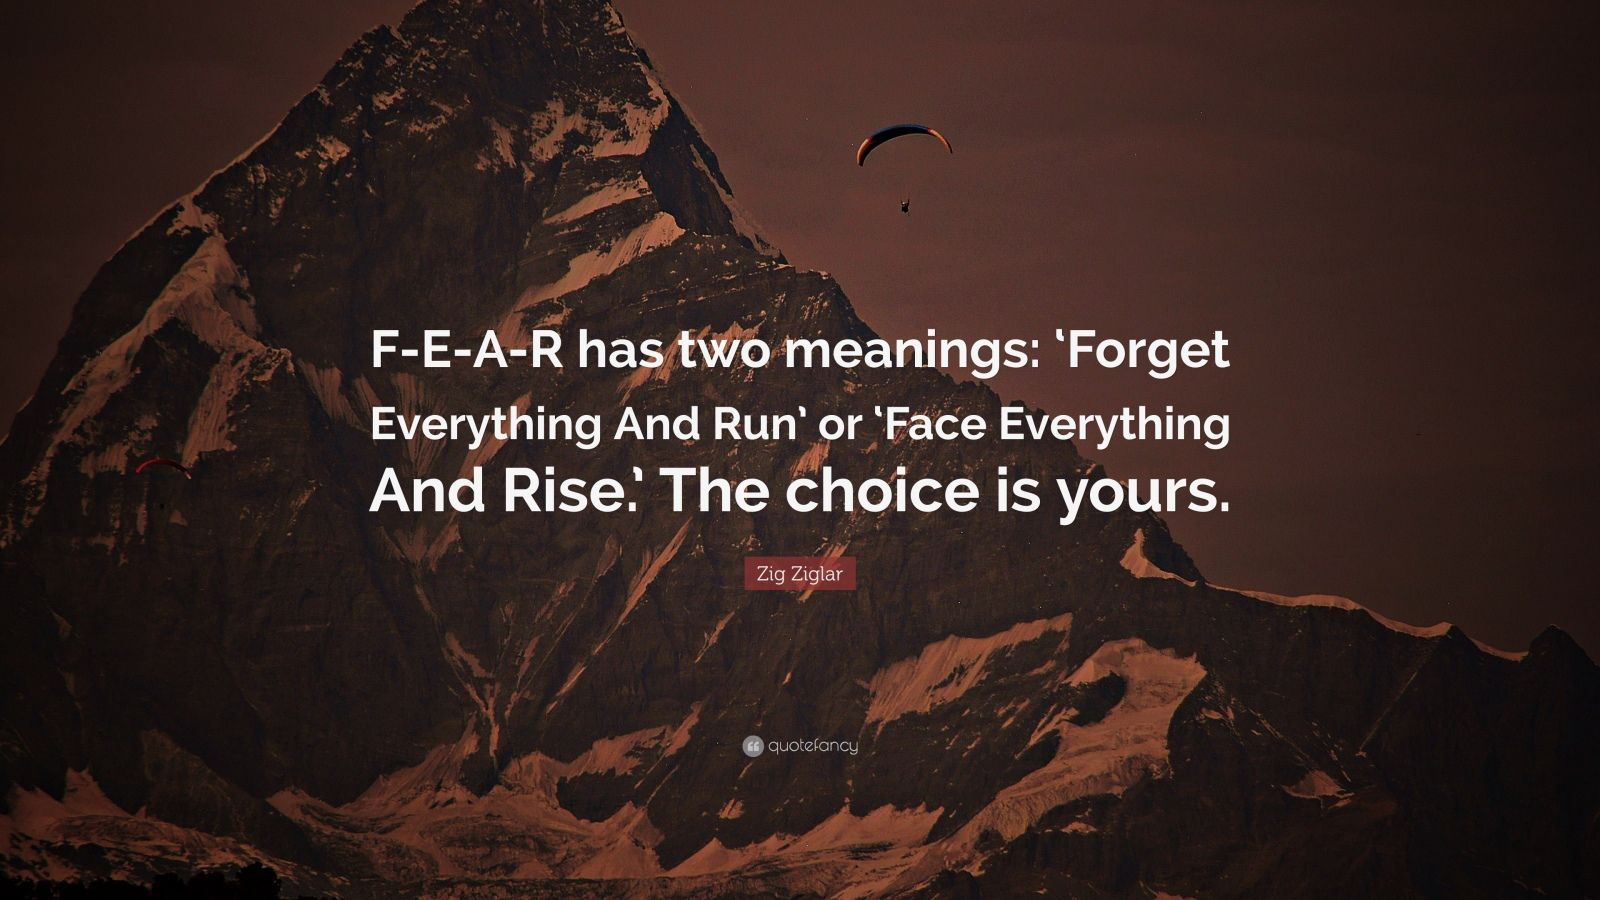 "Fear Quotes: ""F-E-A-R has two meanings: 'Forget Everything And Run' or 'Face Everything And Rise.' The choice is yours."" — Zig Ziglar"